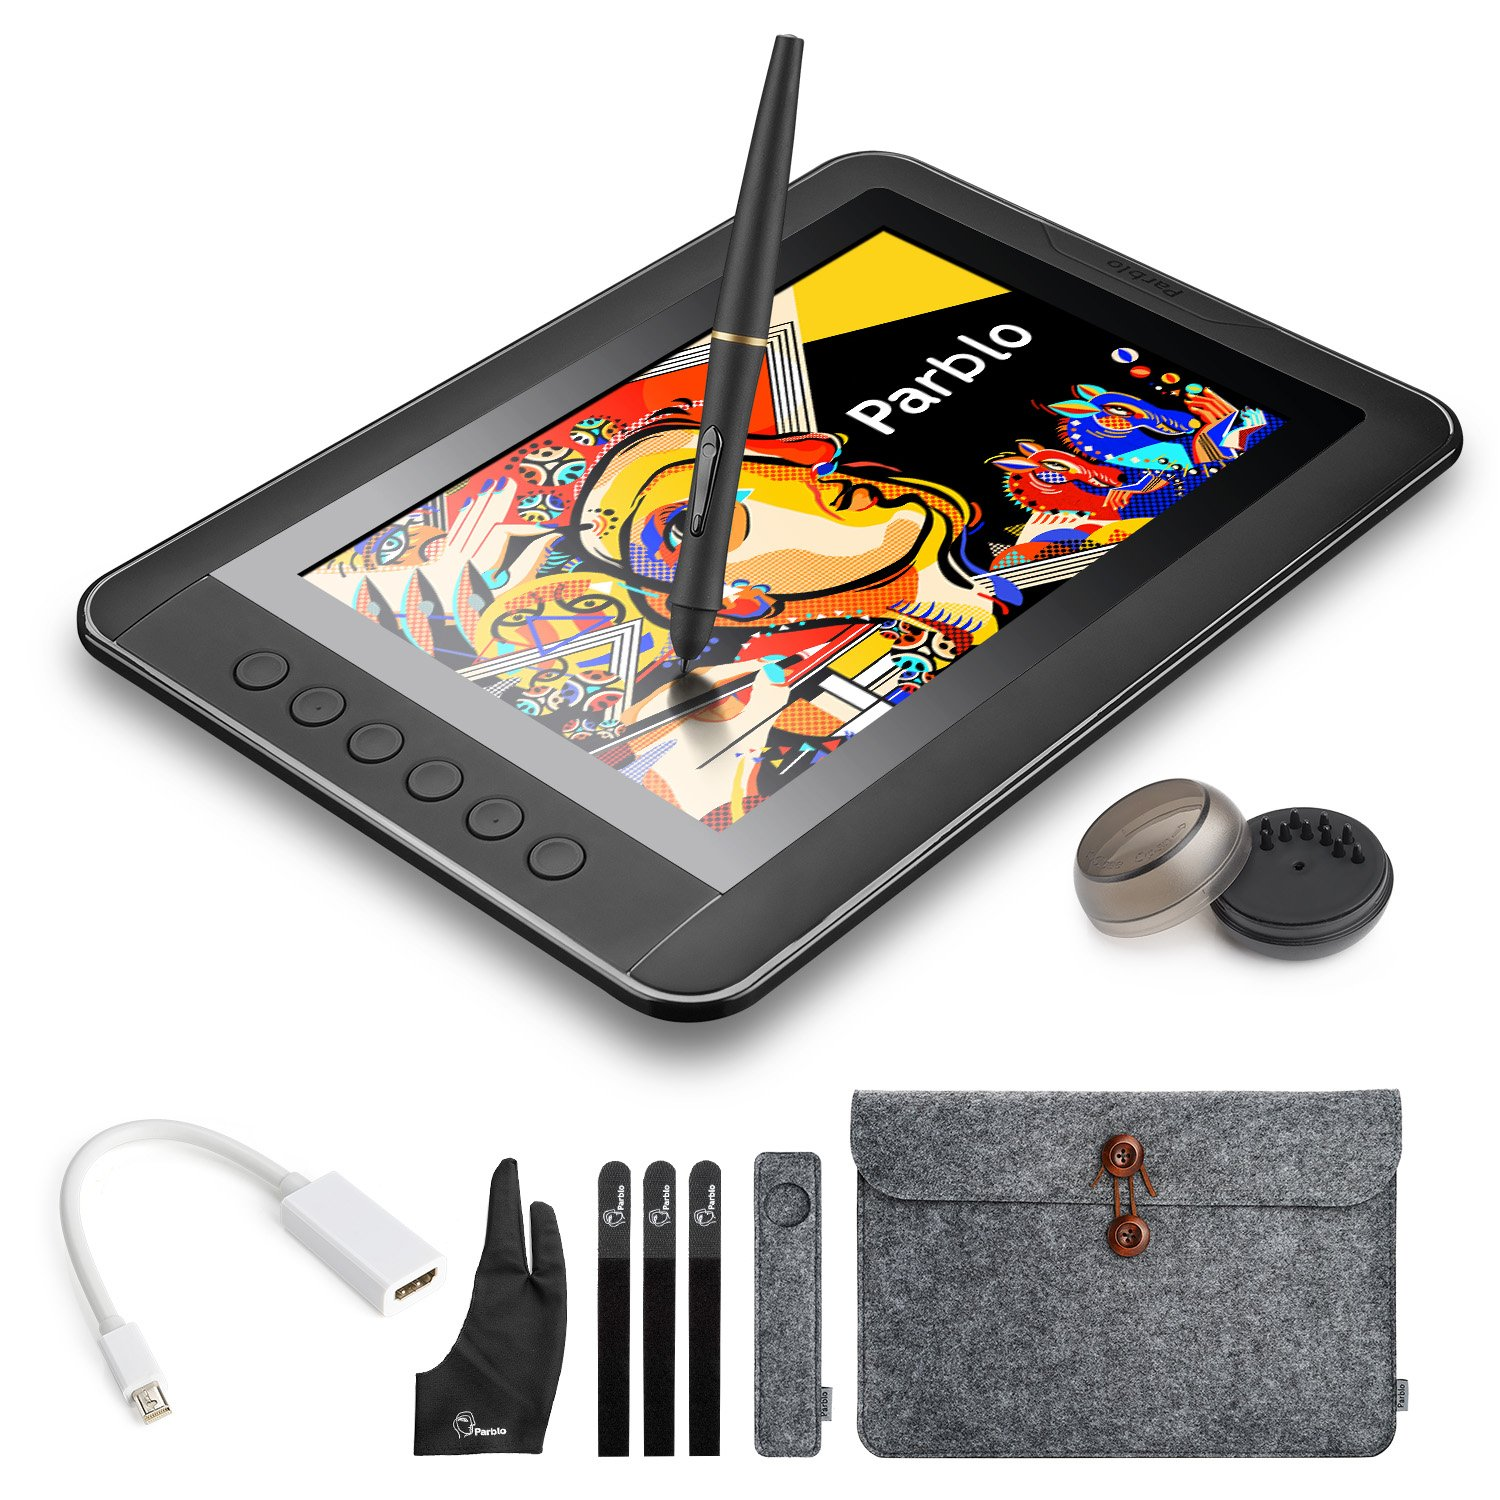 Parblo Mast10 10.1'' Graphic Drawing Monitor with 6 Shortcut Keys and Battery-free Pen Passive Stylus + Mini DisplayPort to HDMI Adapter for Mac